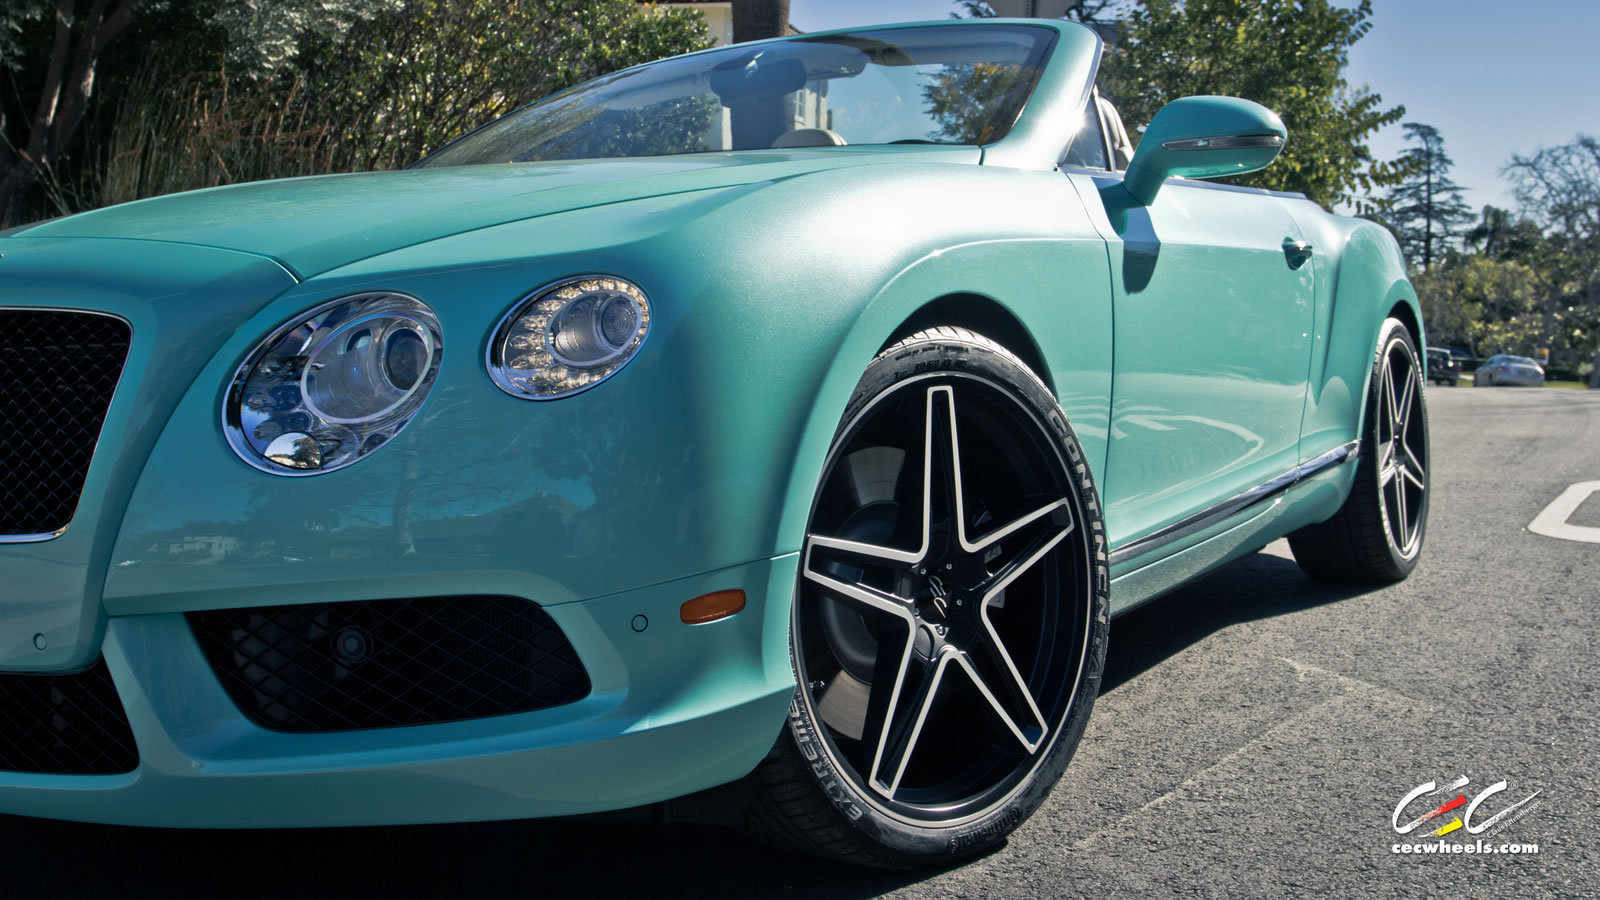 2013 bentley continental gtc limited edition by bentley. Cars Review. Best American Auto & Cars Review